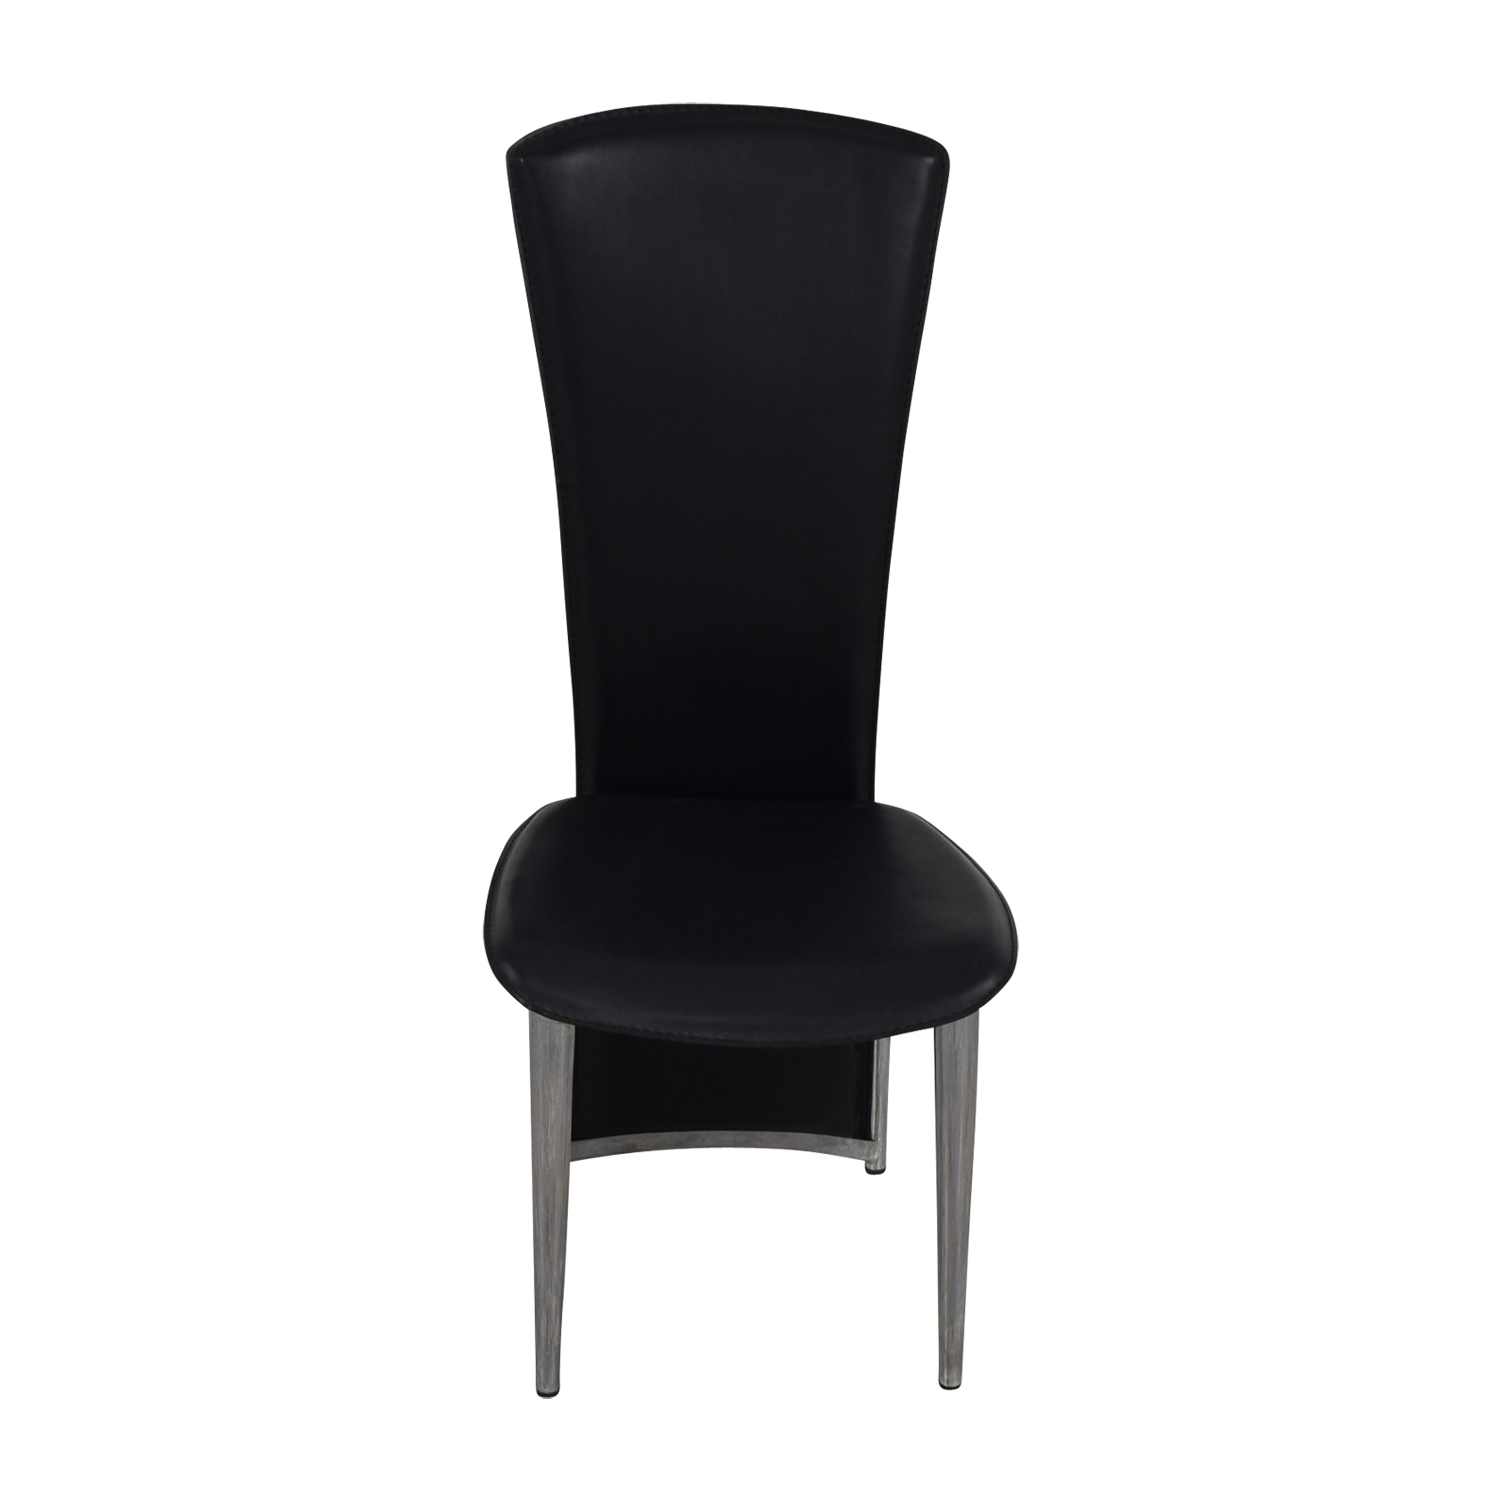 shop High Back Black Chair online